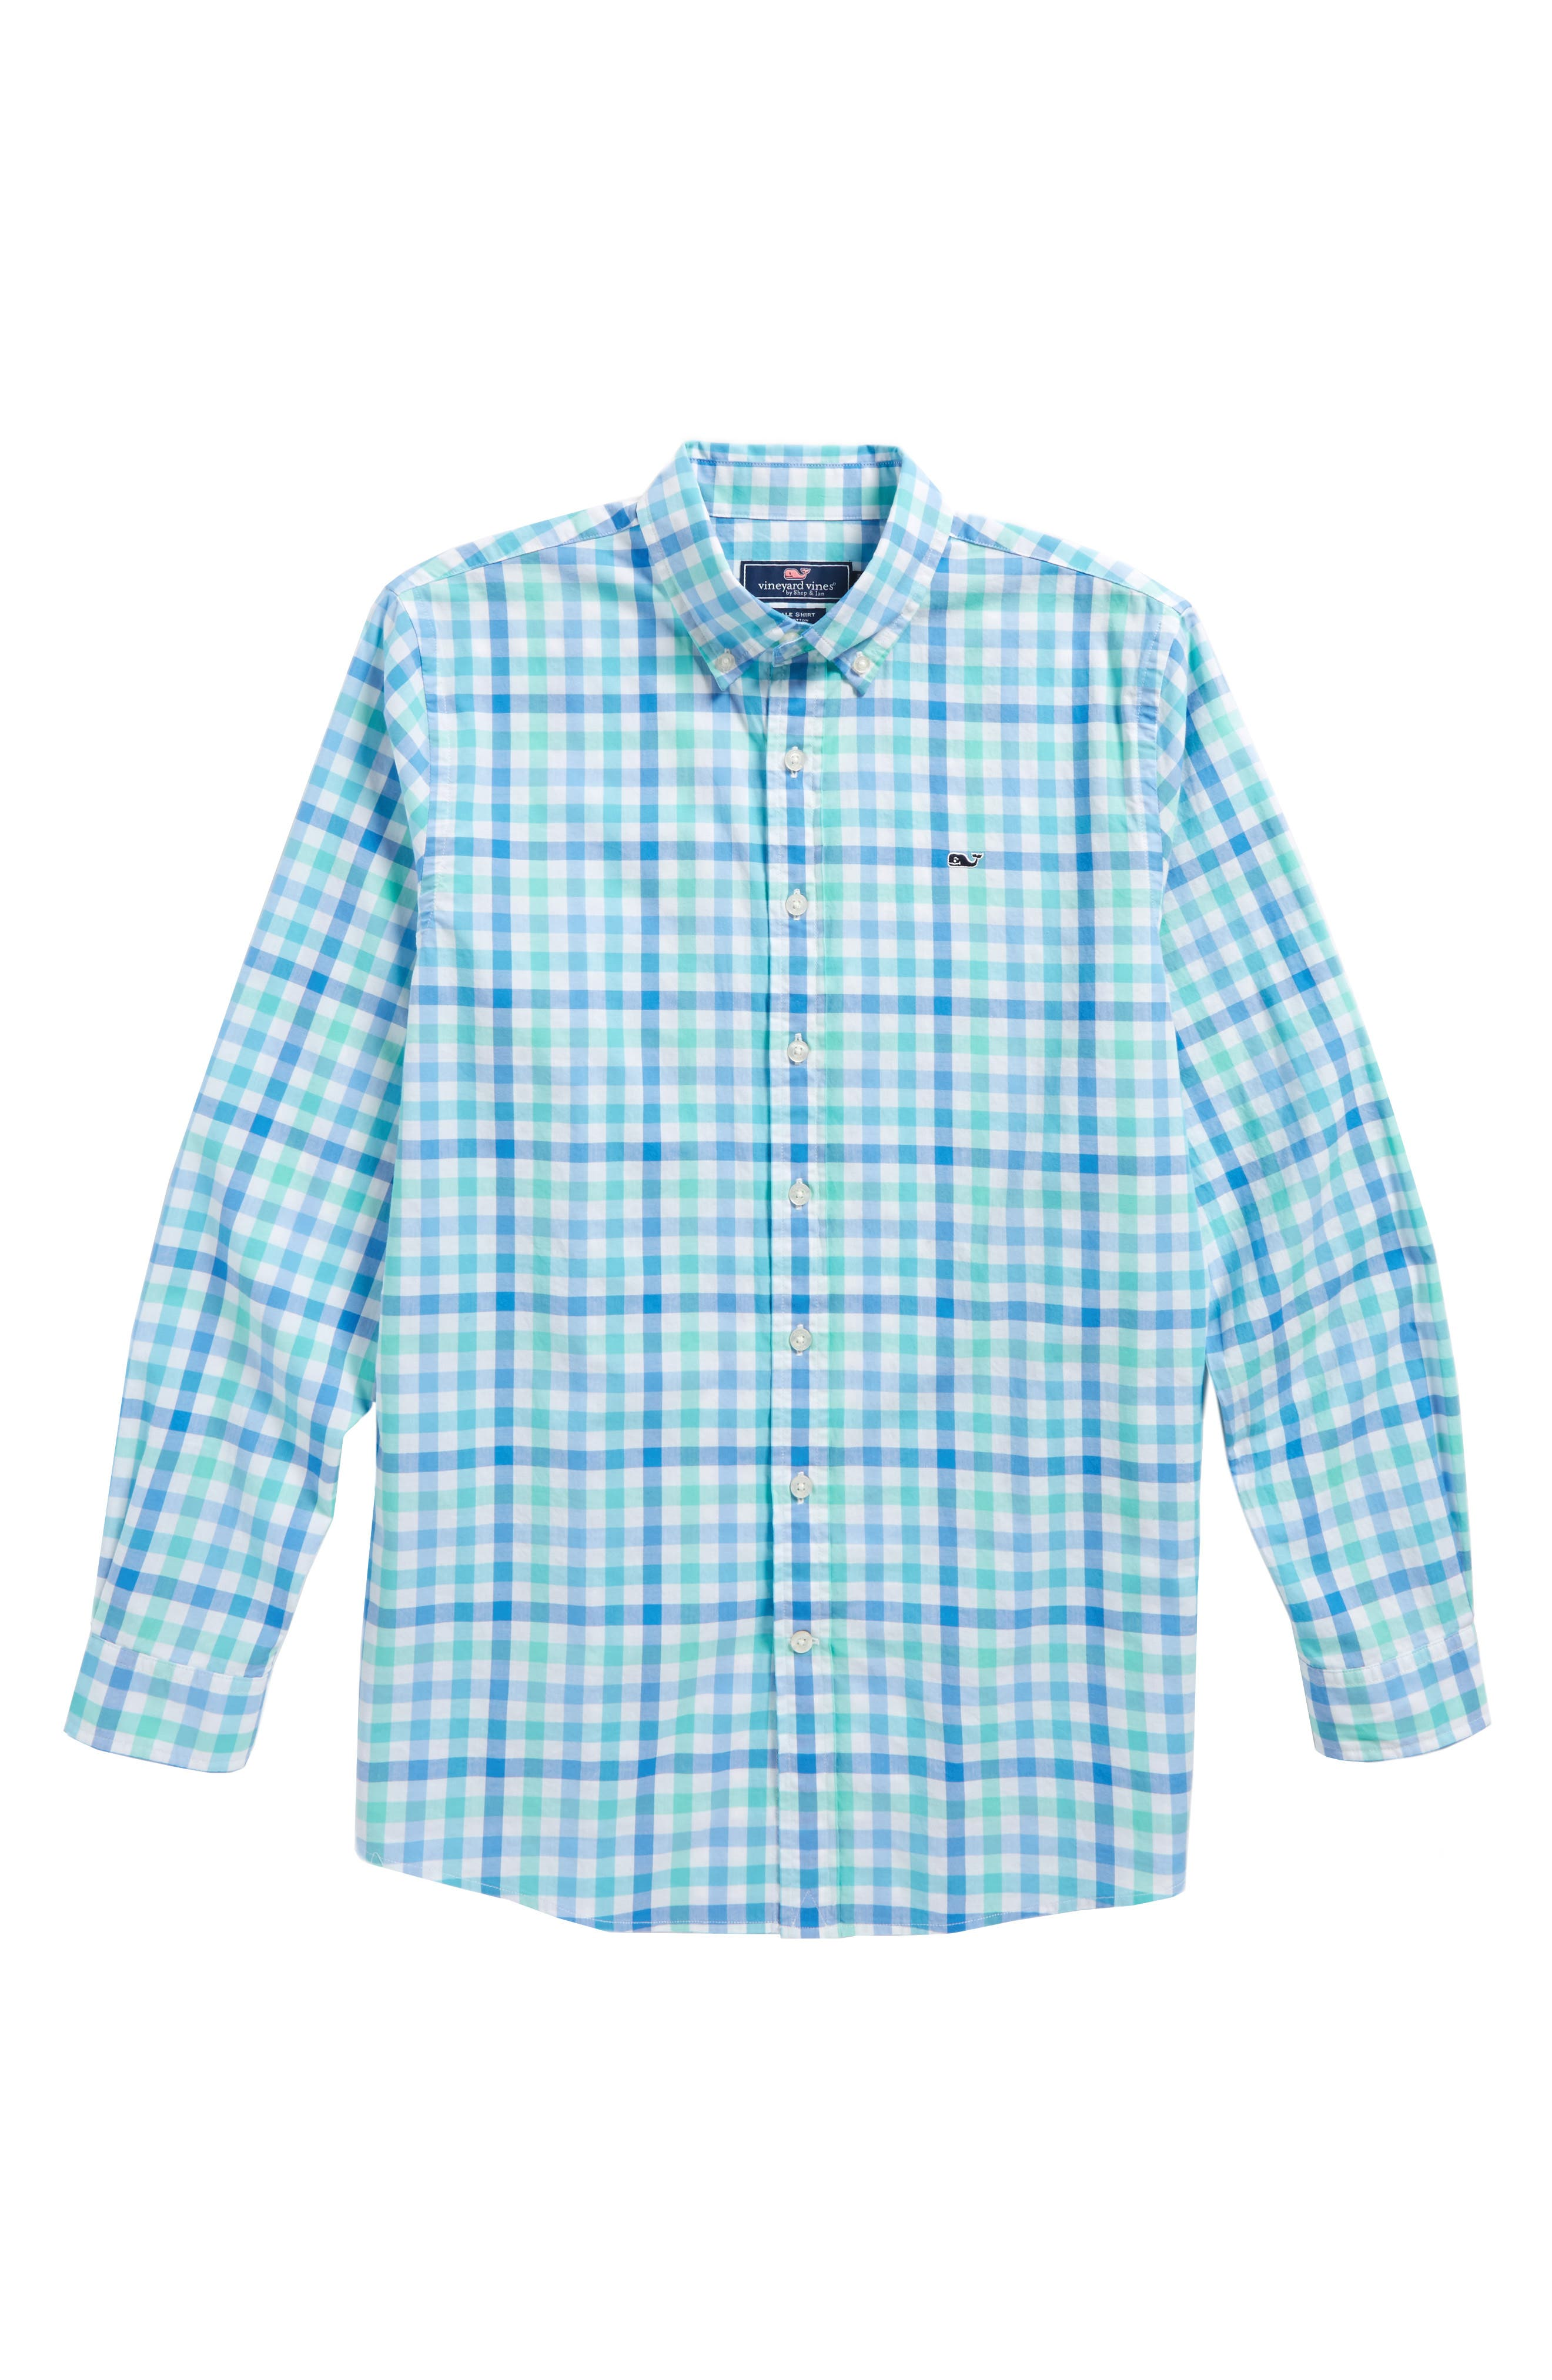 Eagle's Nest Gingham Whale Shirt,                         Main,                         color, Turqs